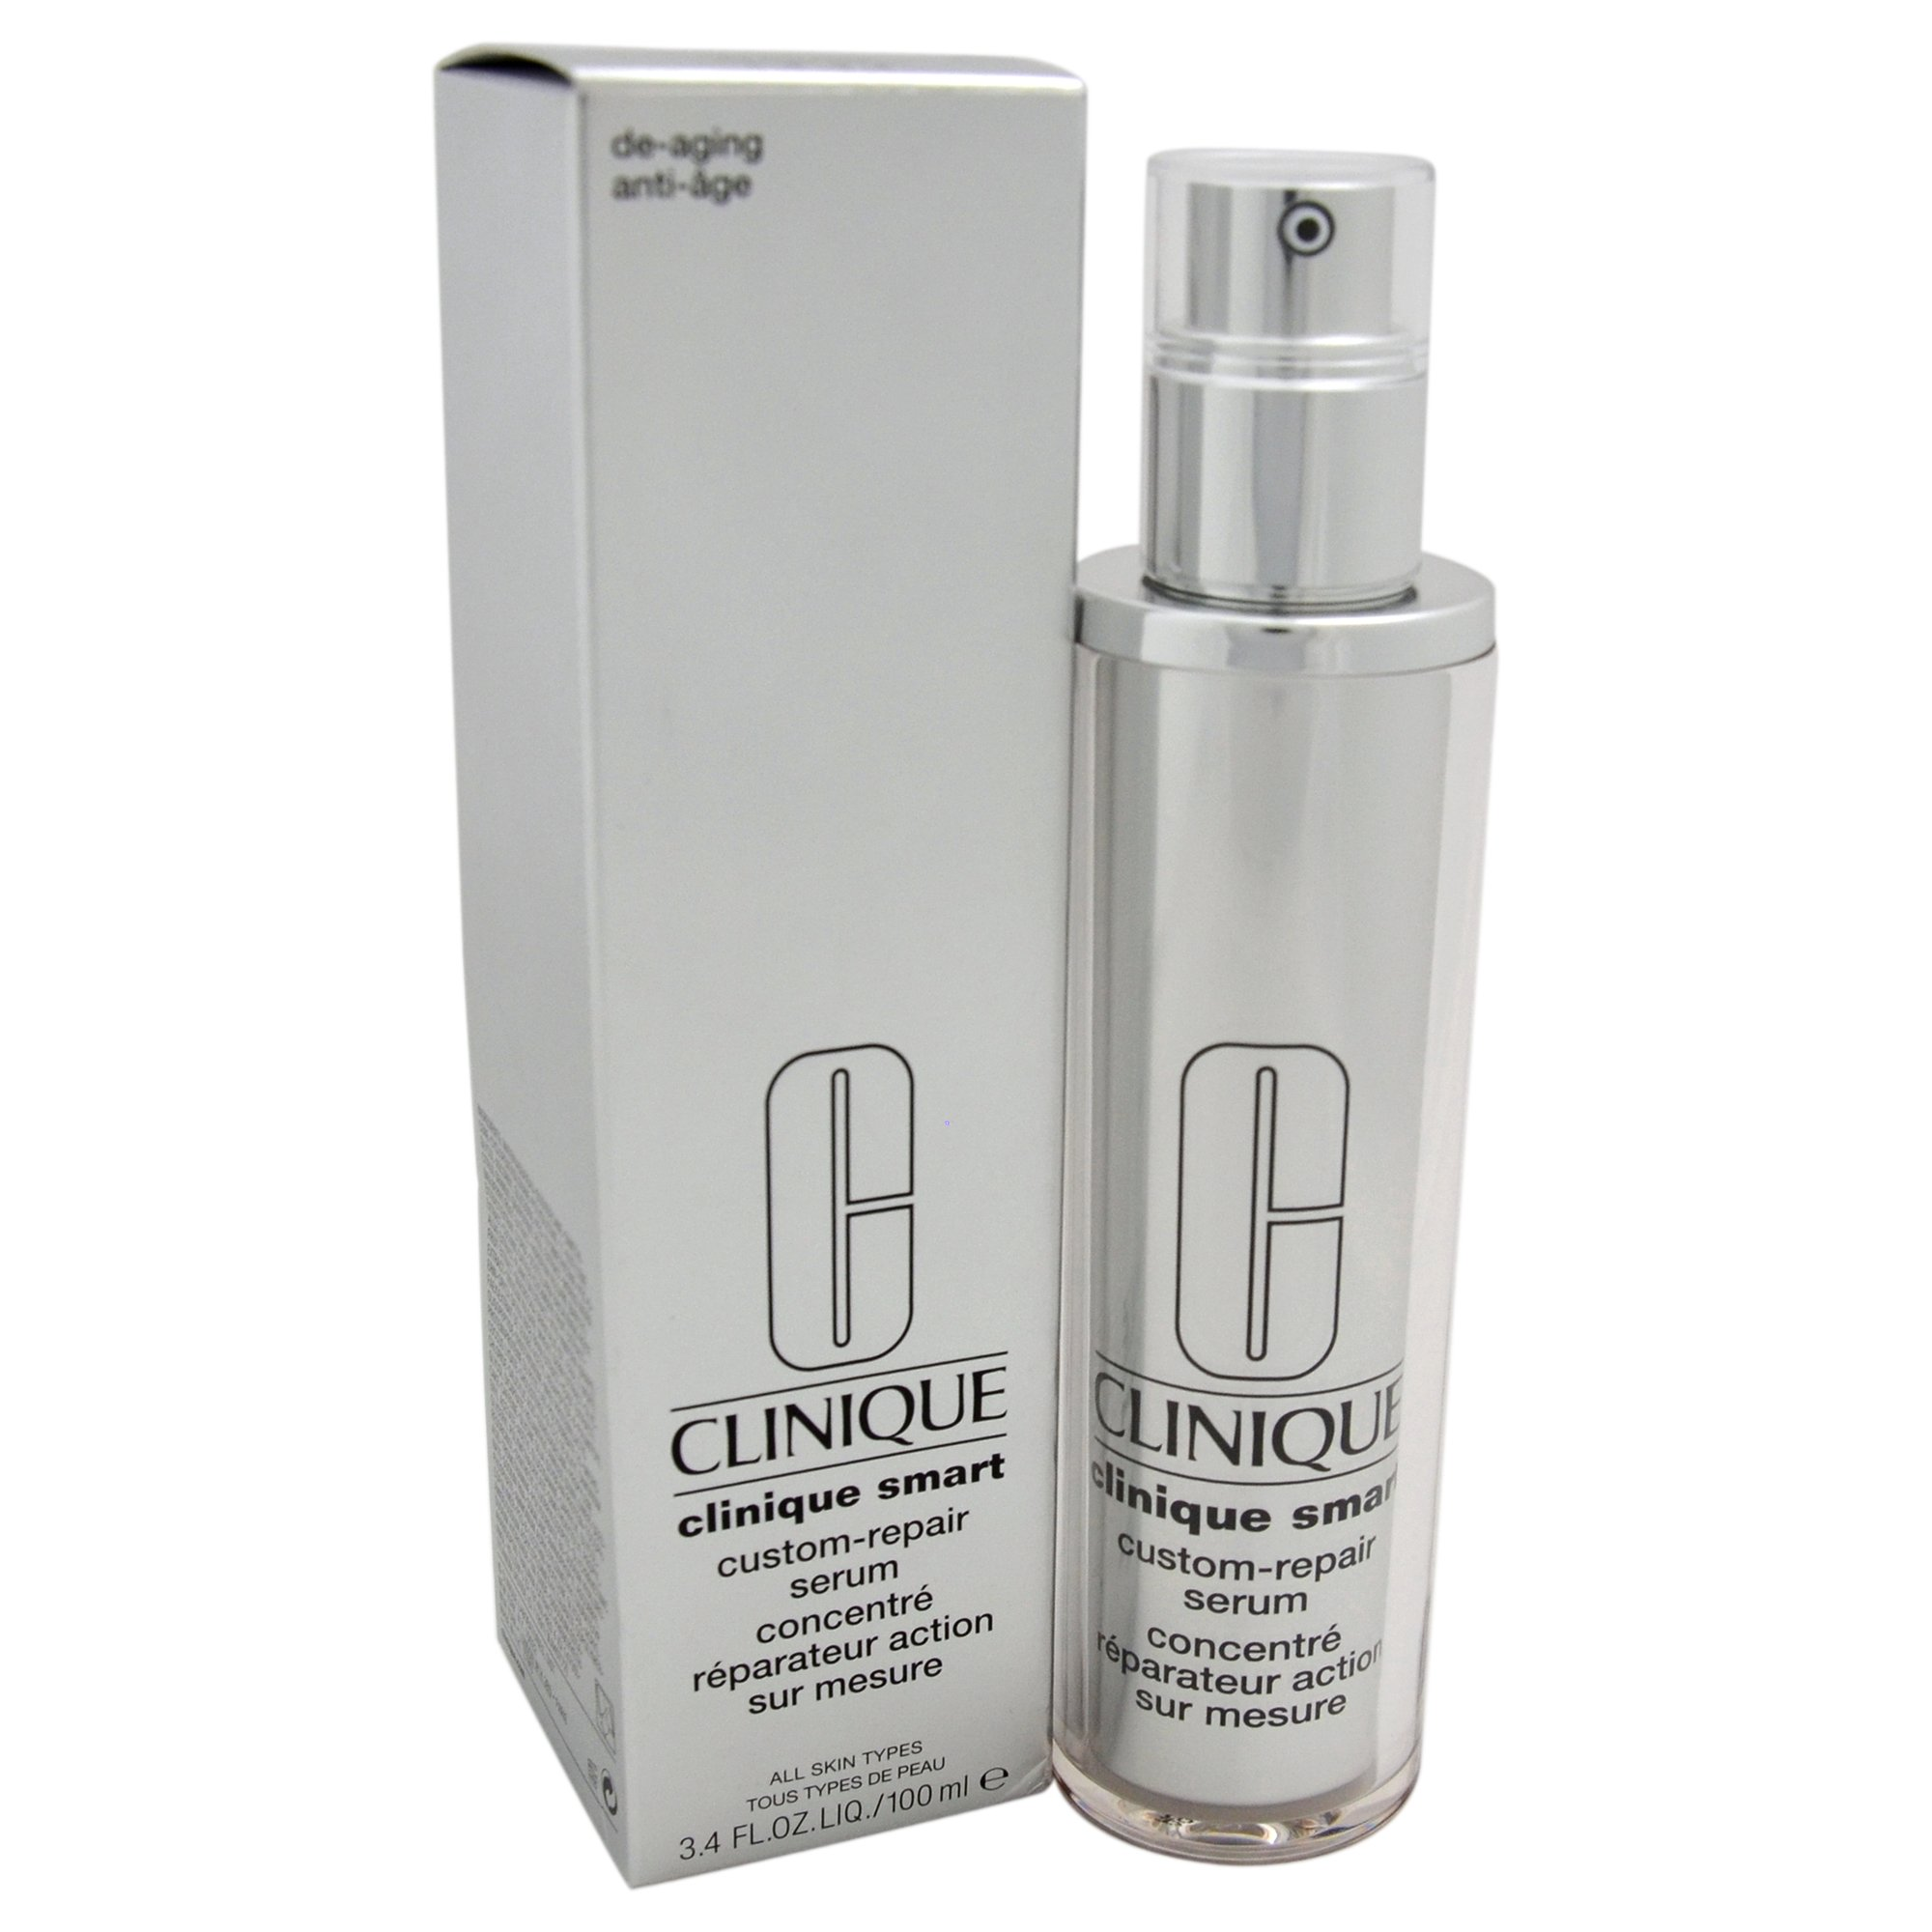 Clinique Unisex Smart Custom-Repair Serum, All Skin Types, 3.4 Ounce by Clinique (Image #1)